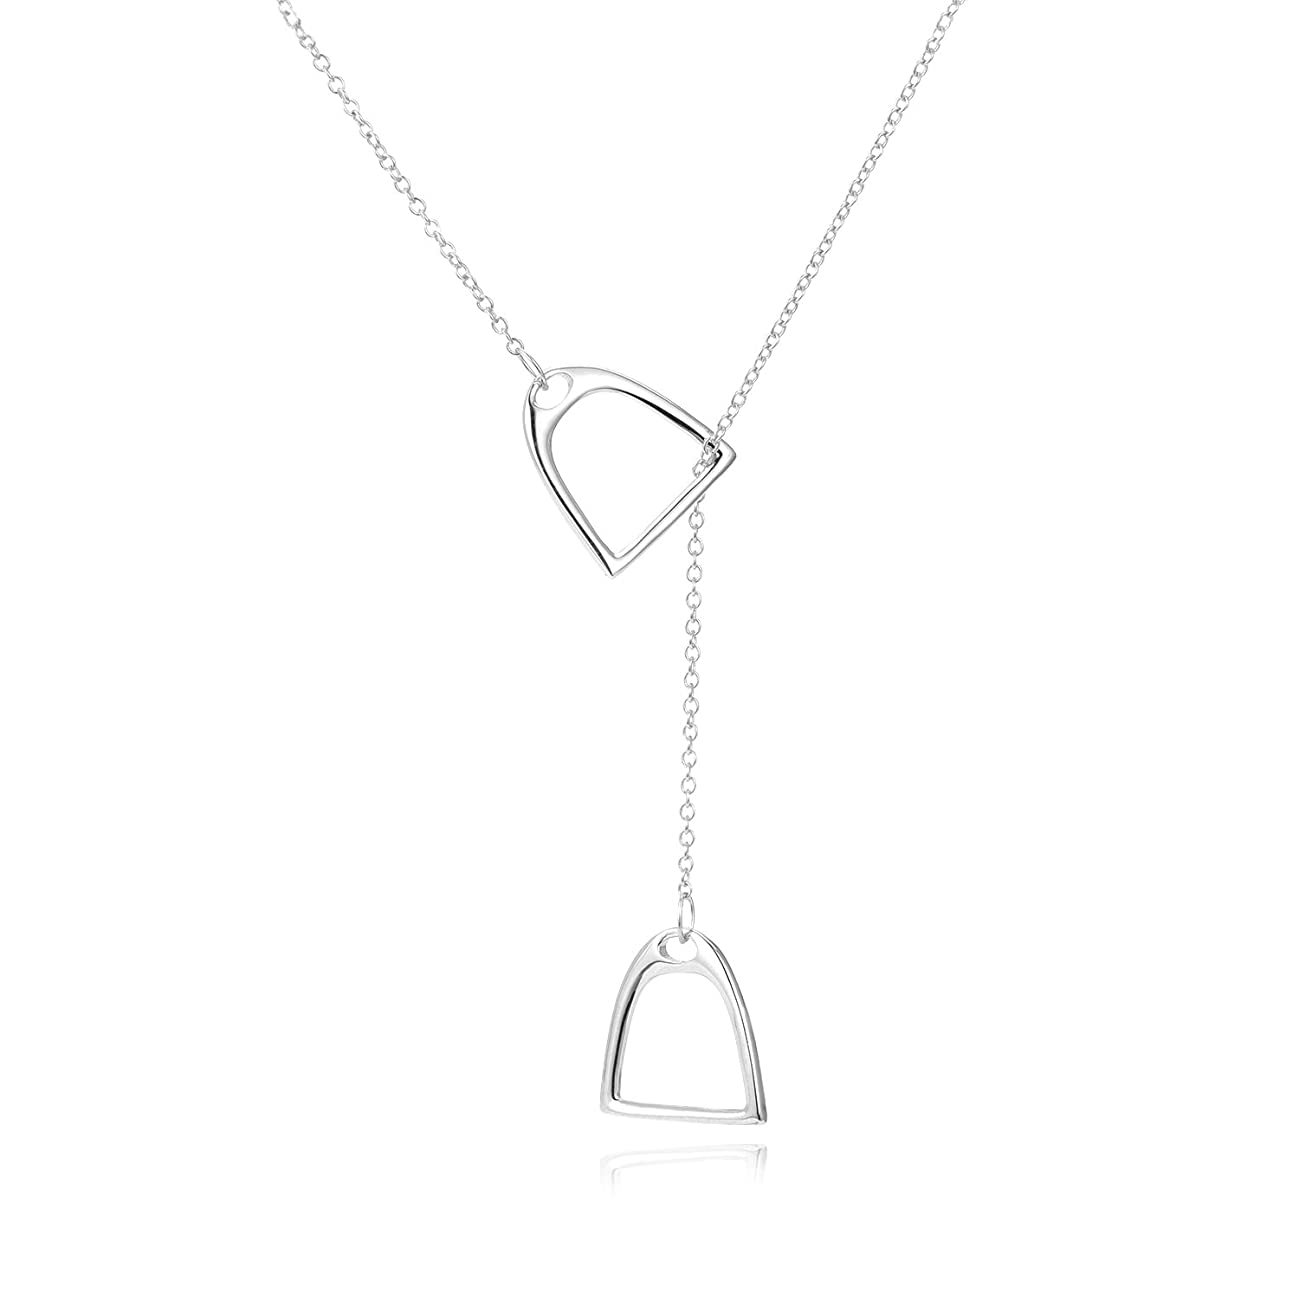 YFN Horse Gift Jewelry 925 Sterling Silver Simple Double Horse Strirrup Lariat Necklace Horseshoe Earrings Gift for Women Girls